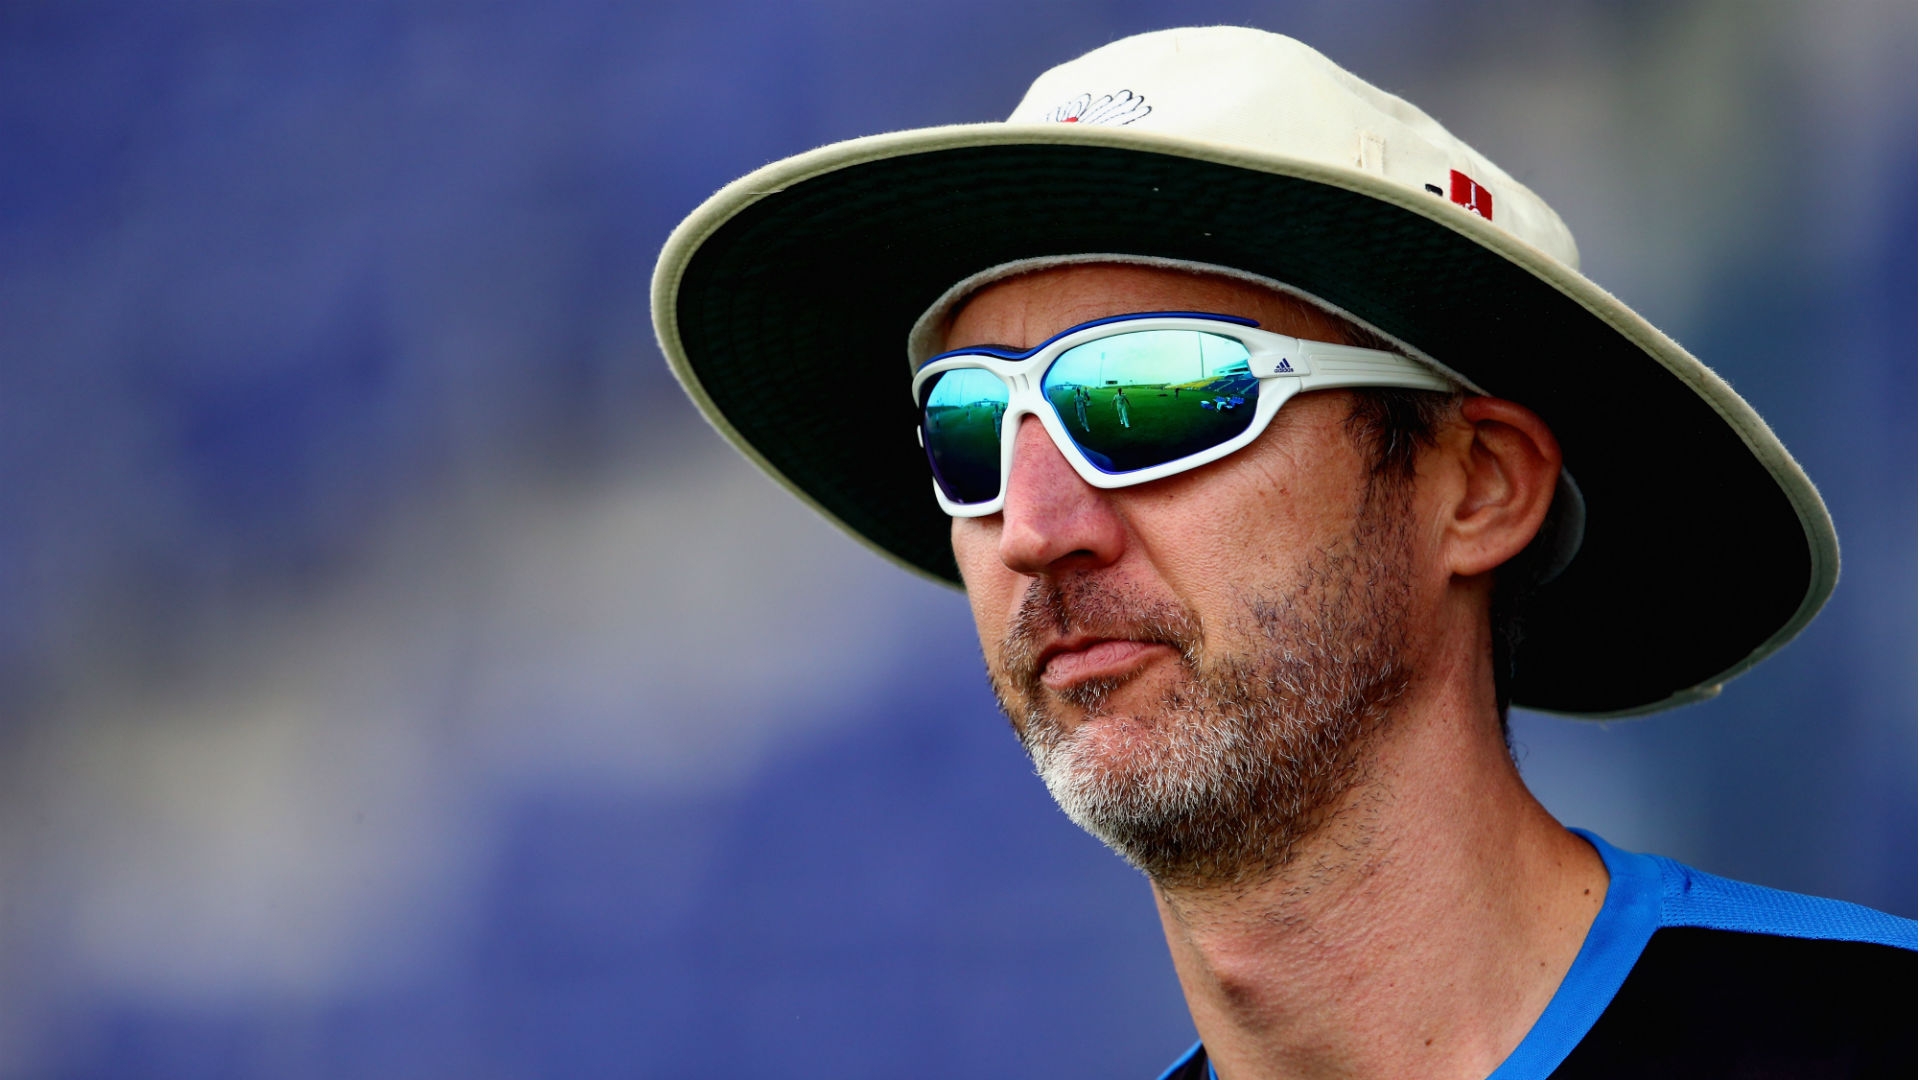 Coronavirus: Gillespie hopeful over T20 World Cup, believes domestic systems can prosper